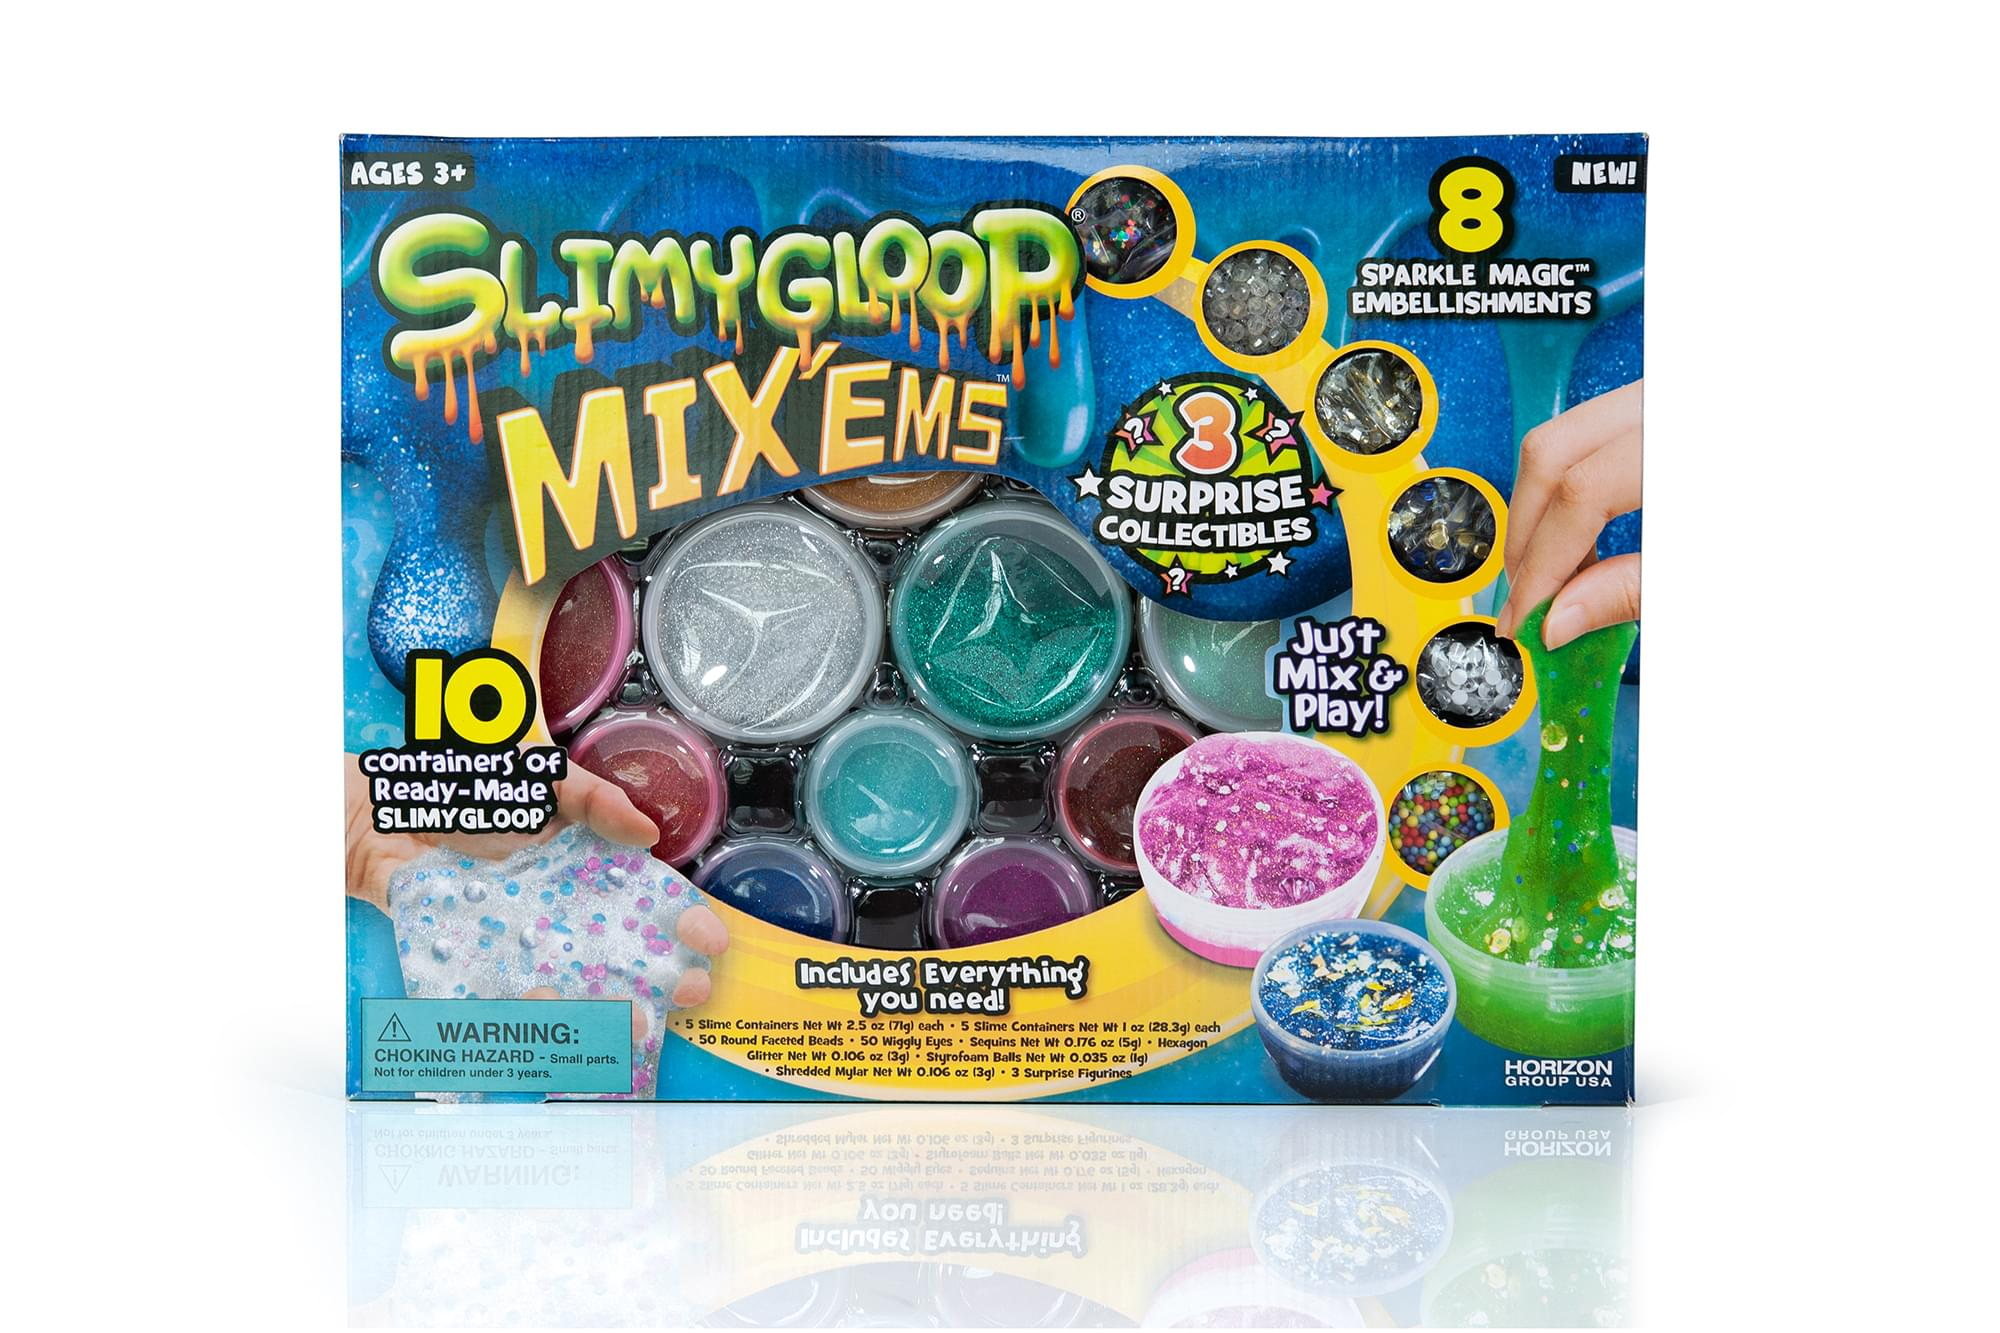 20 containers of Slimygloop Toy338 SlimyGloop Mix/'ems